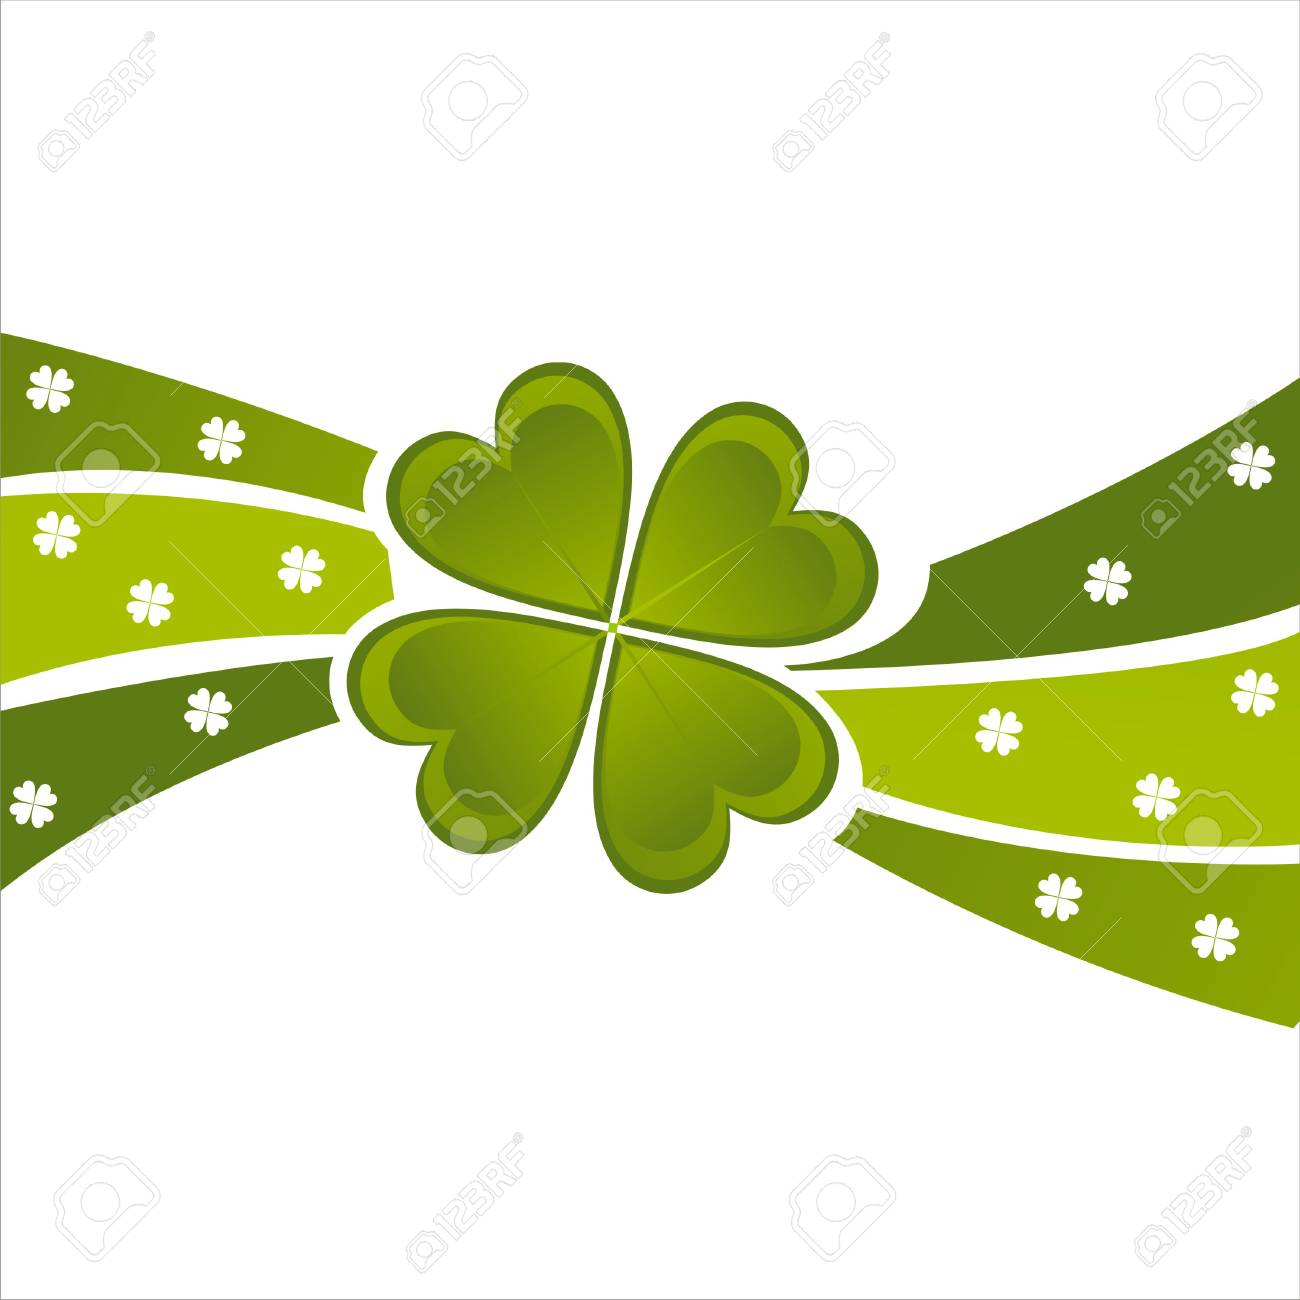 st. patrick's day background Stock Vector - 8755887